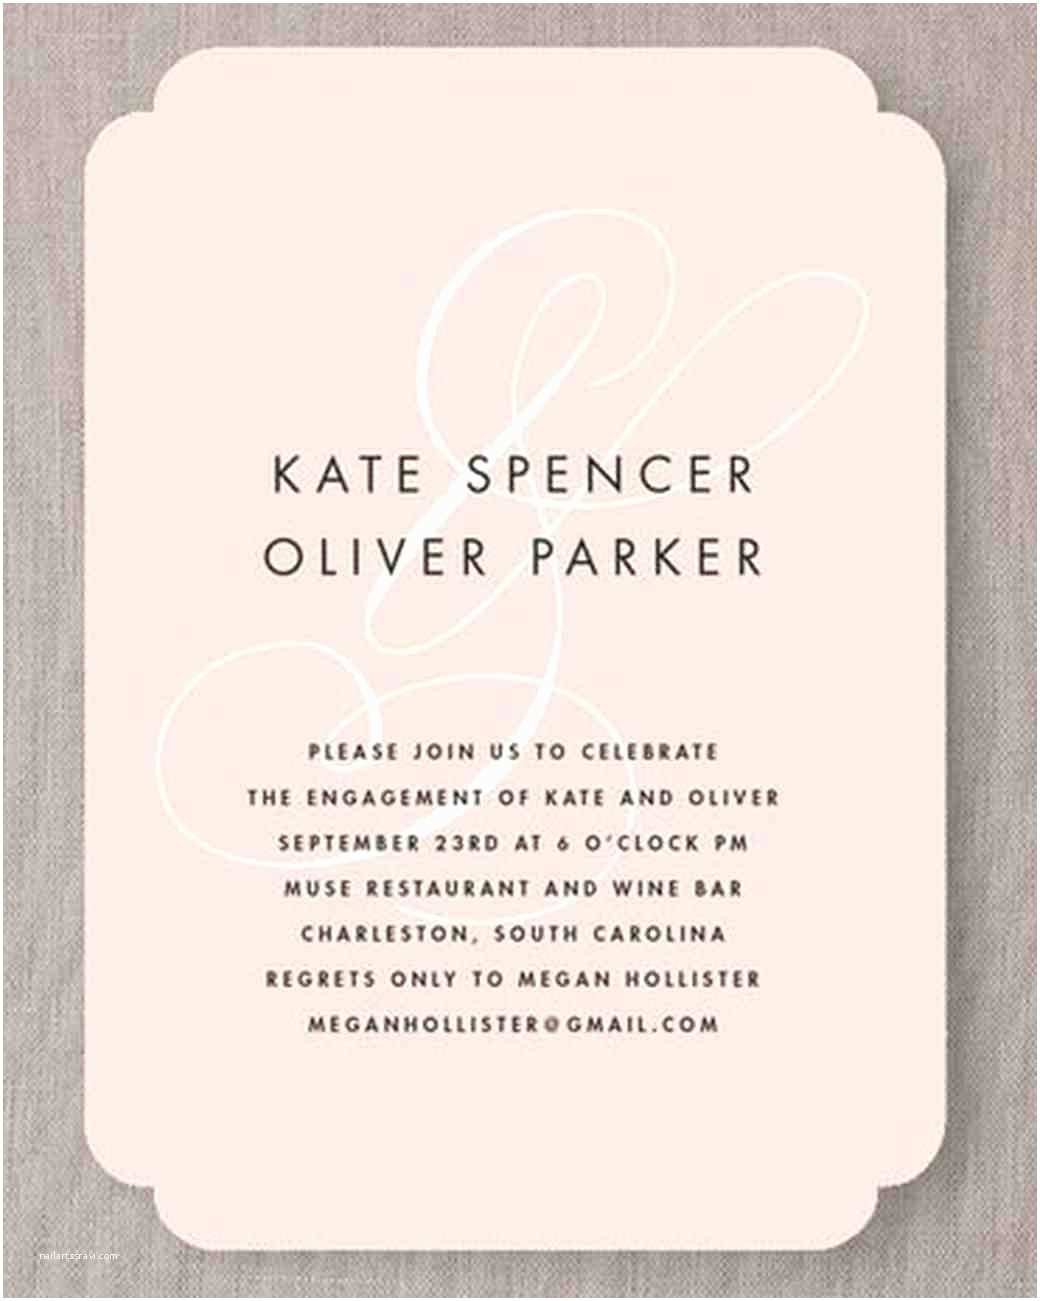 Engagement Party Invitations 15 Engagement Party Invitations